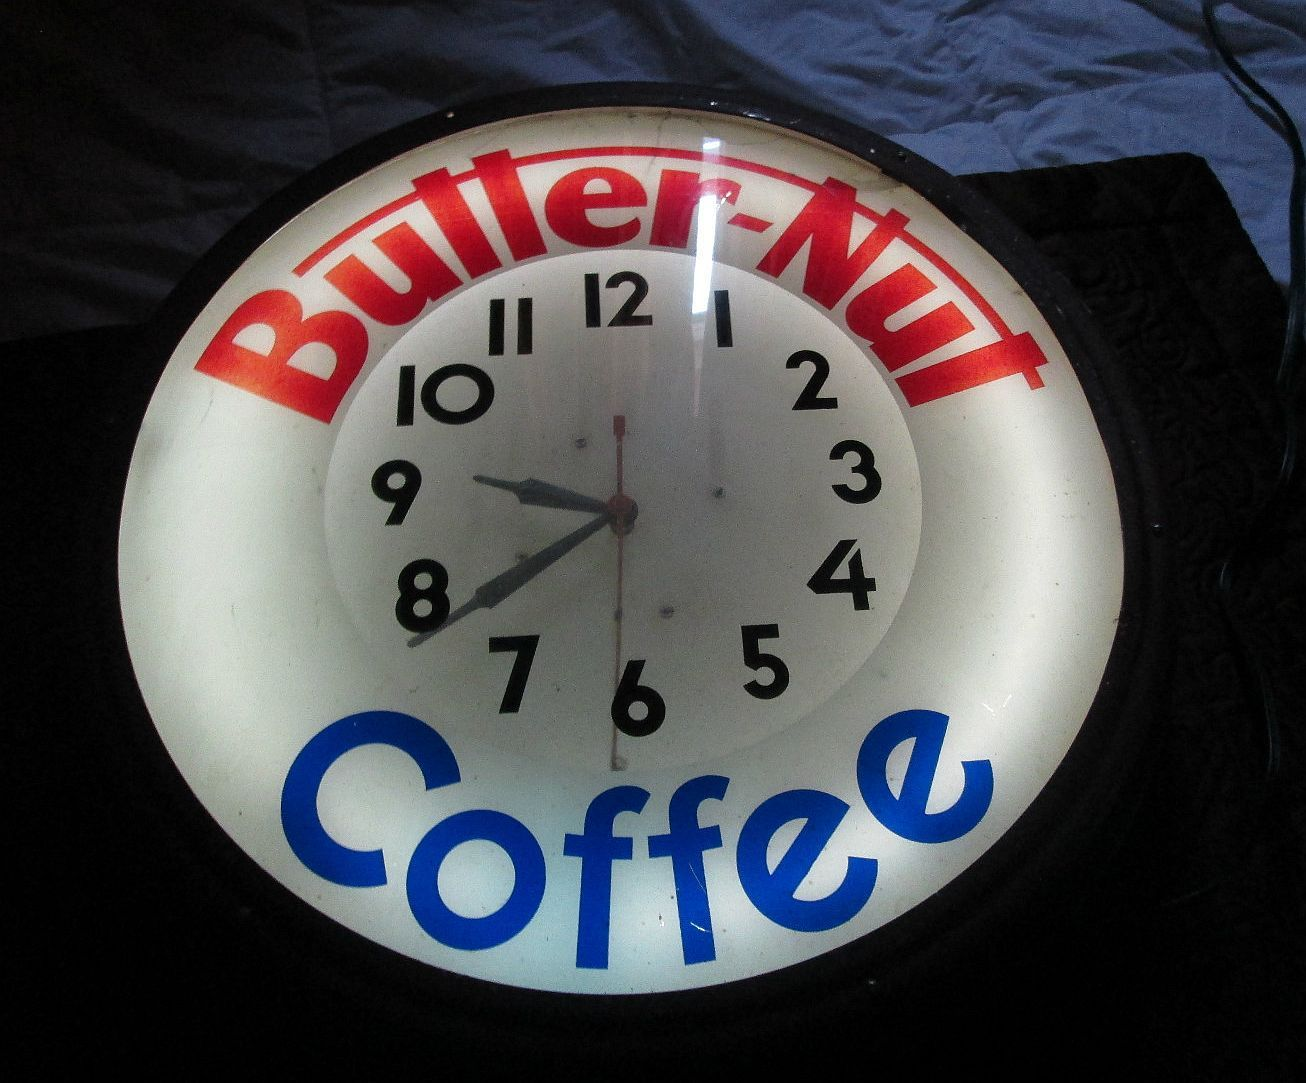 Butter-Nut Coffee Clock (Old Vintage Neon Advertising Clocks, Butter Nut Antique Lighted Round Clock)